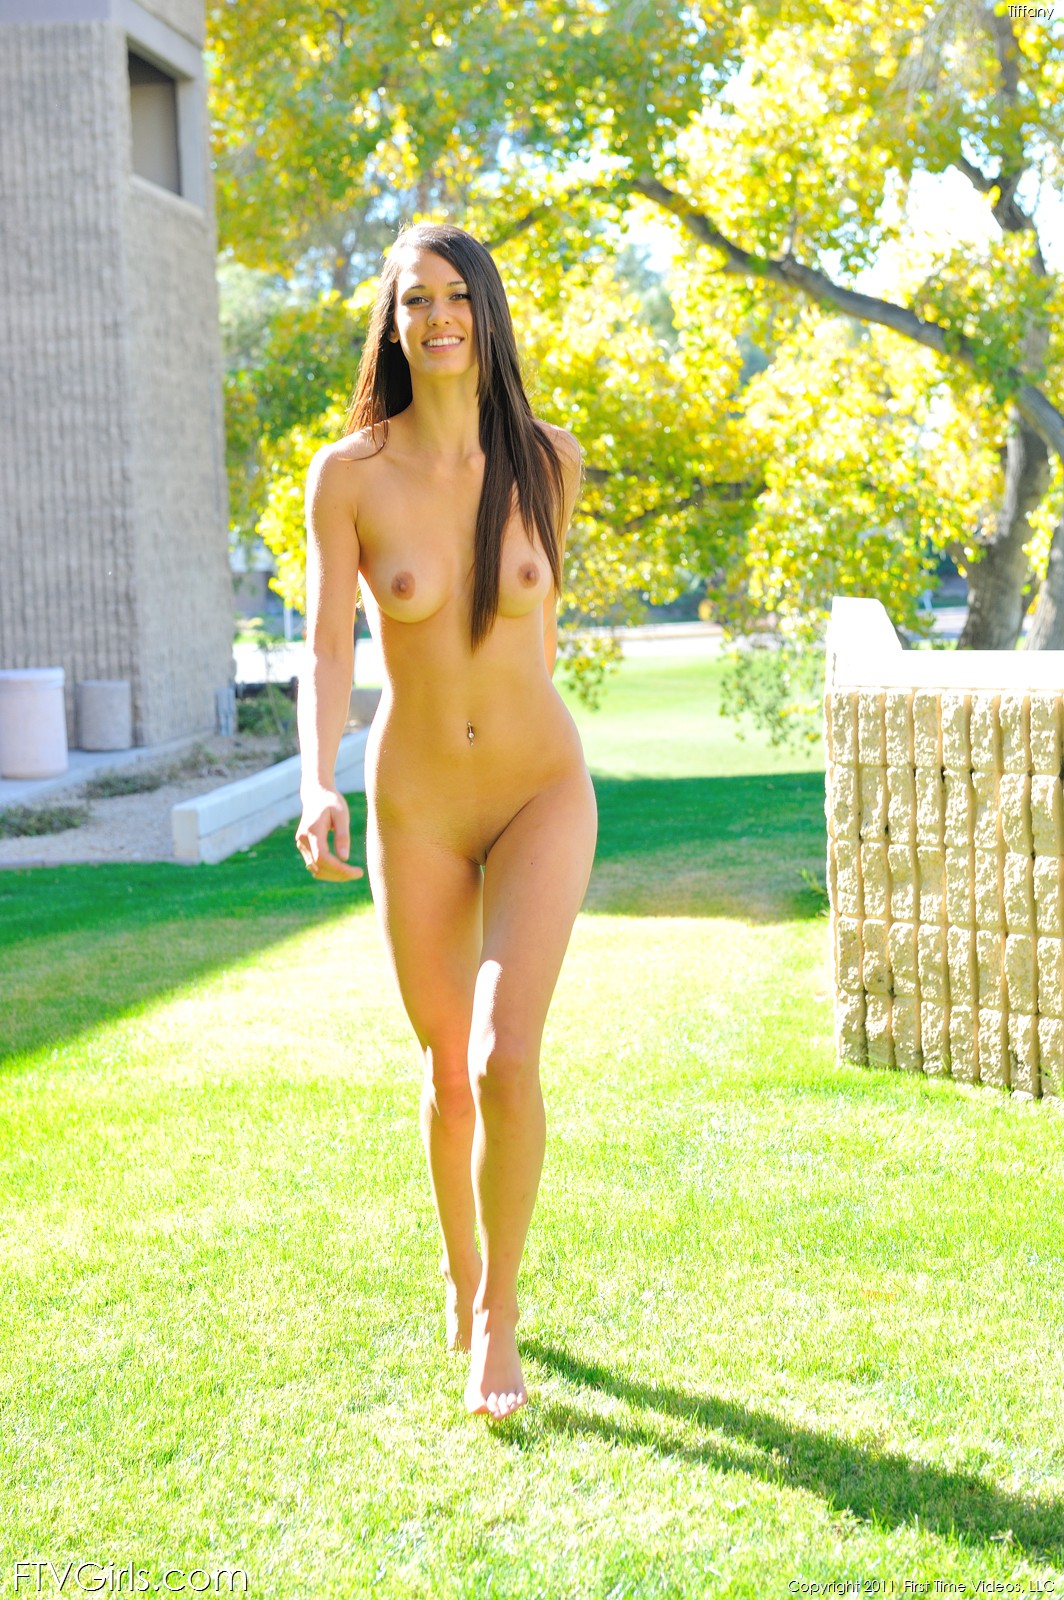 Ftv girl naked in public